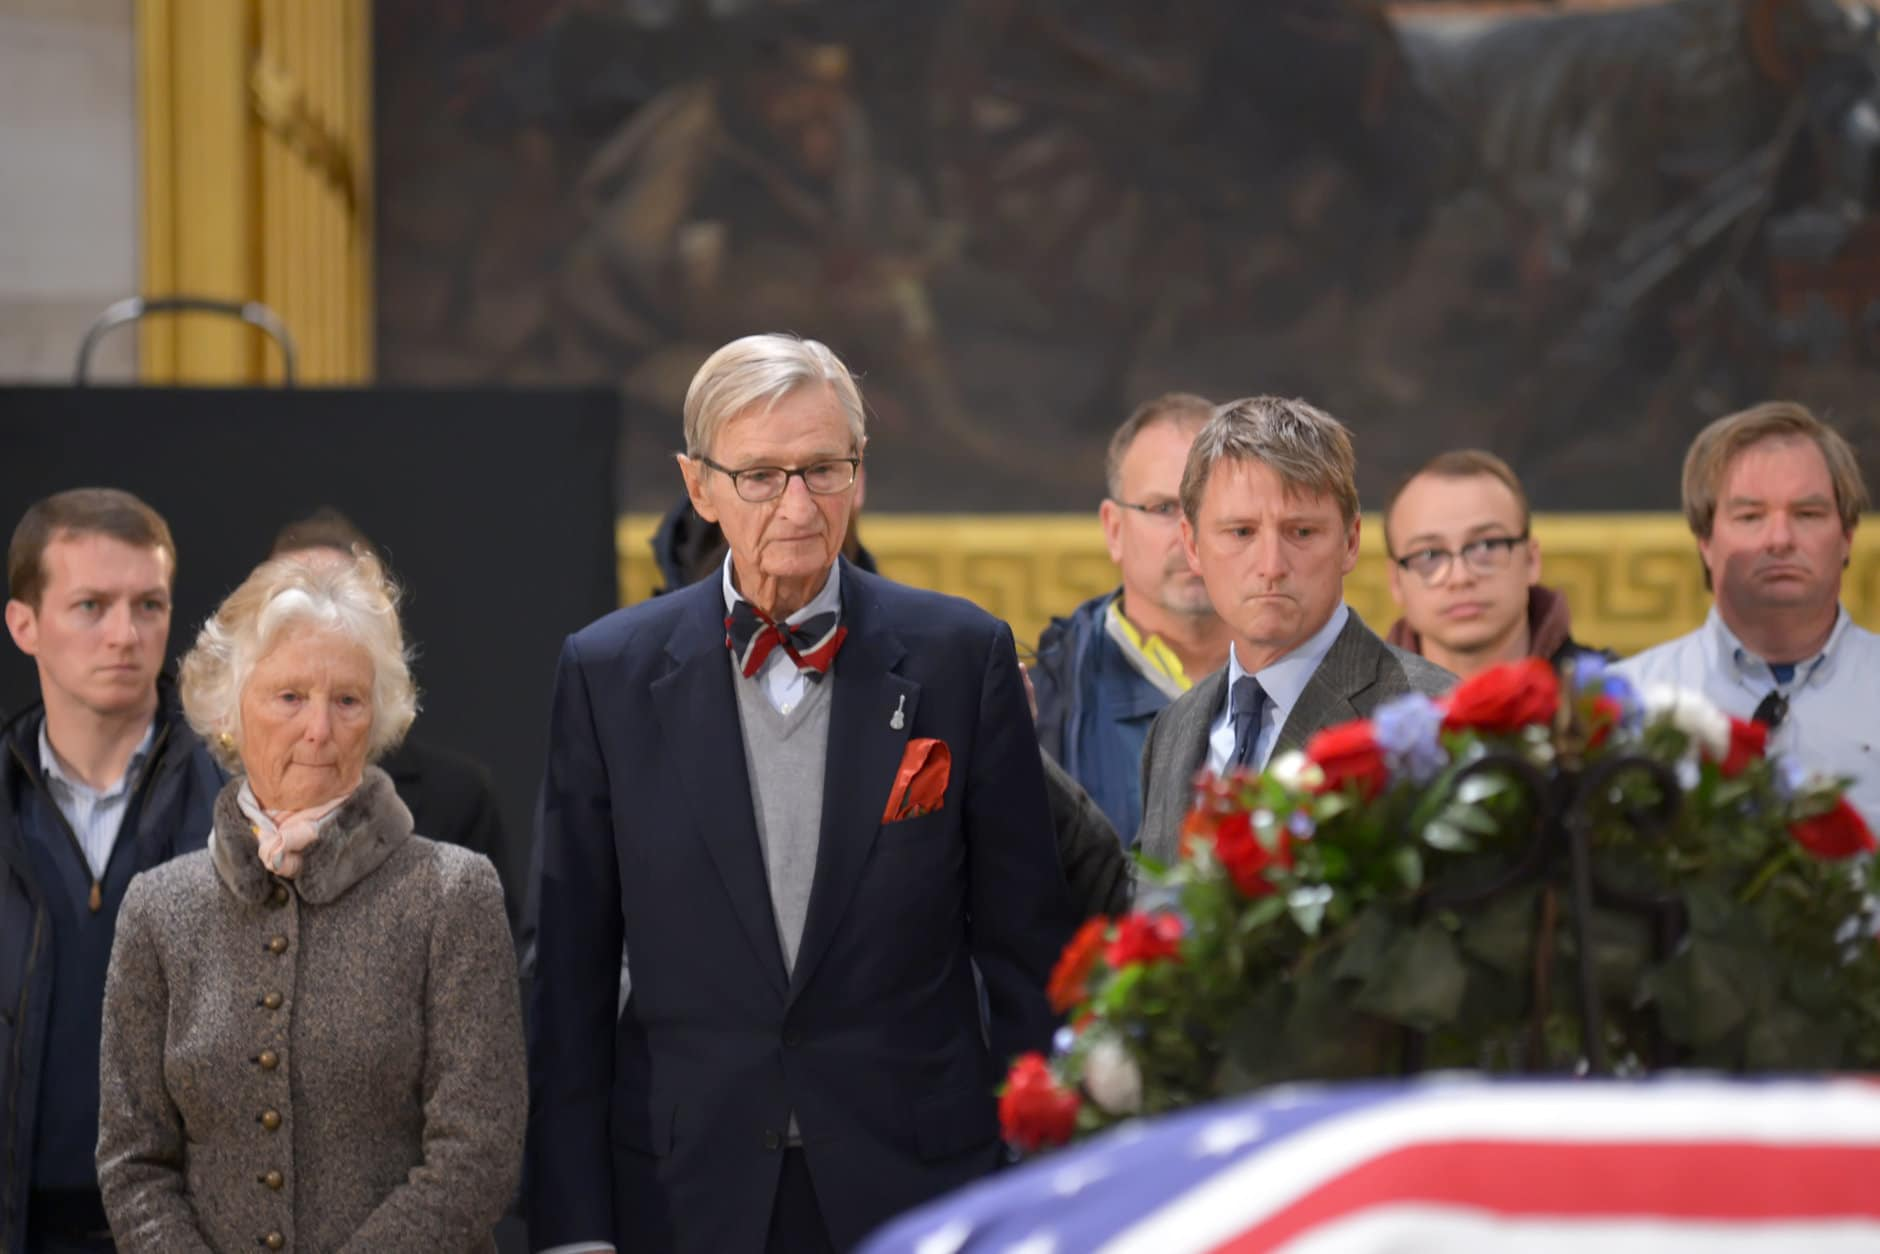 "Jonathan Bush (middle), brother of the late President George H.W. Bush; wife Jody Ellis (left); and son Jonathan S. Bush (right) attend the lying-in-state for President George H.W. Bush on December 4, 2018. (Courtesy Shannon Finney/<a href=""https://www.shannonfinneyphotography.com/index"" target=""_blank"" rel=""noopener noreferrer"">shannonfinneyphotography.com</a>)"